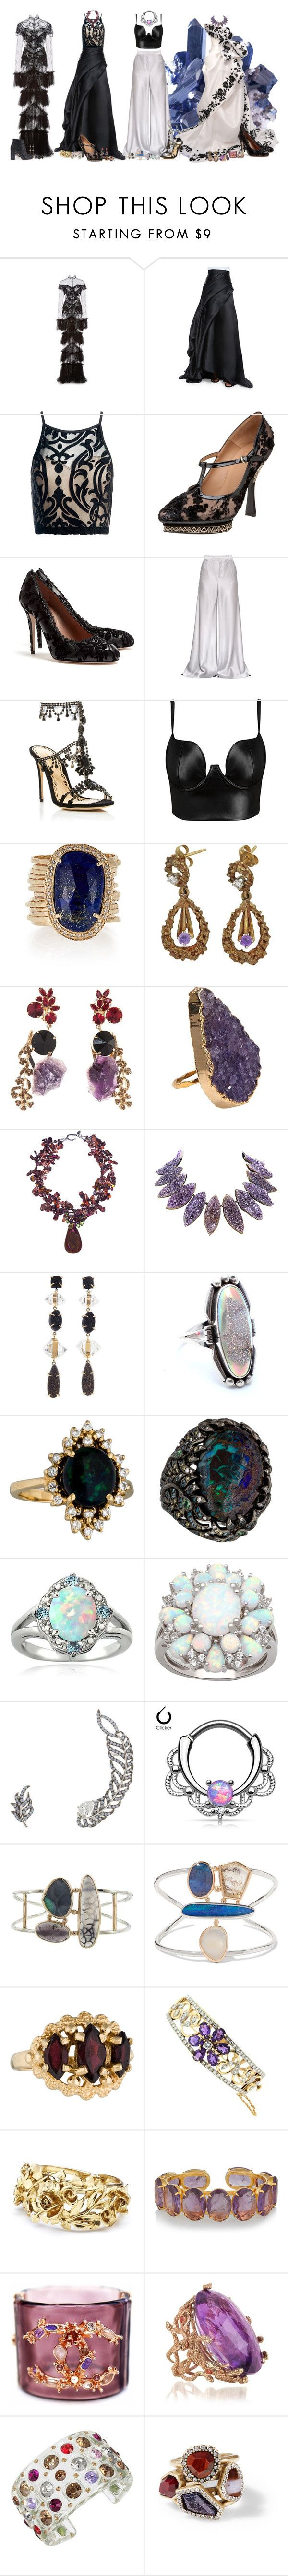 """stone cold"" by fantasia-fashion ❤ liked on Polyvore featuring Jonathan Simkhai, Marchesa, Rubin Singer, Sans Souci, Bally, RED Valentino, Etro, Posh Girl, Jacquie Aiche and Marni"